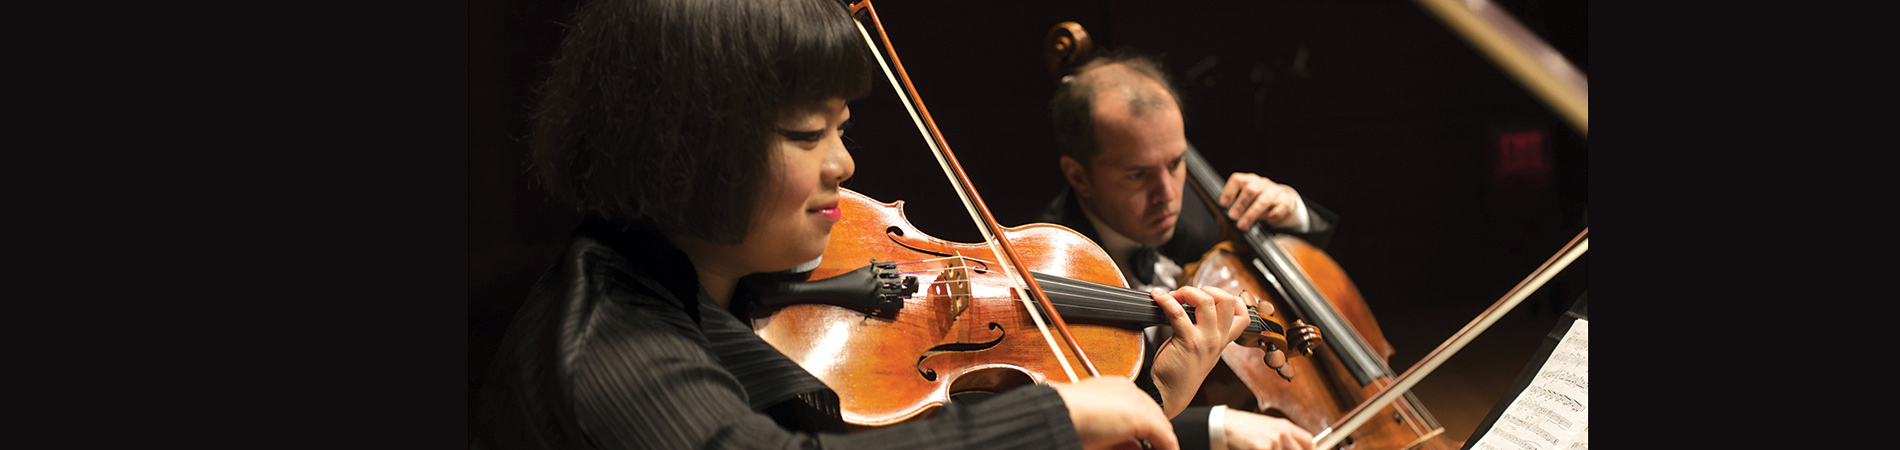 Yura Lee - Chamber Music Society of Lincoln Center